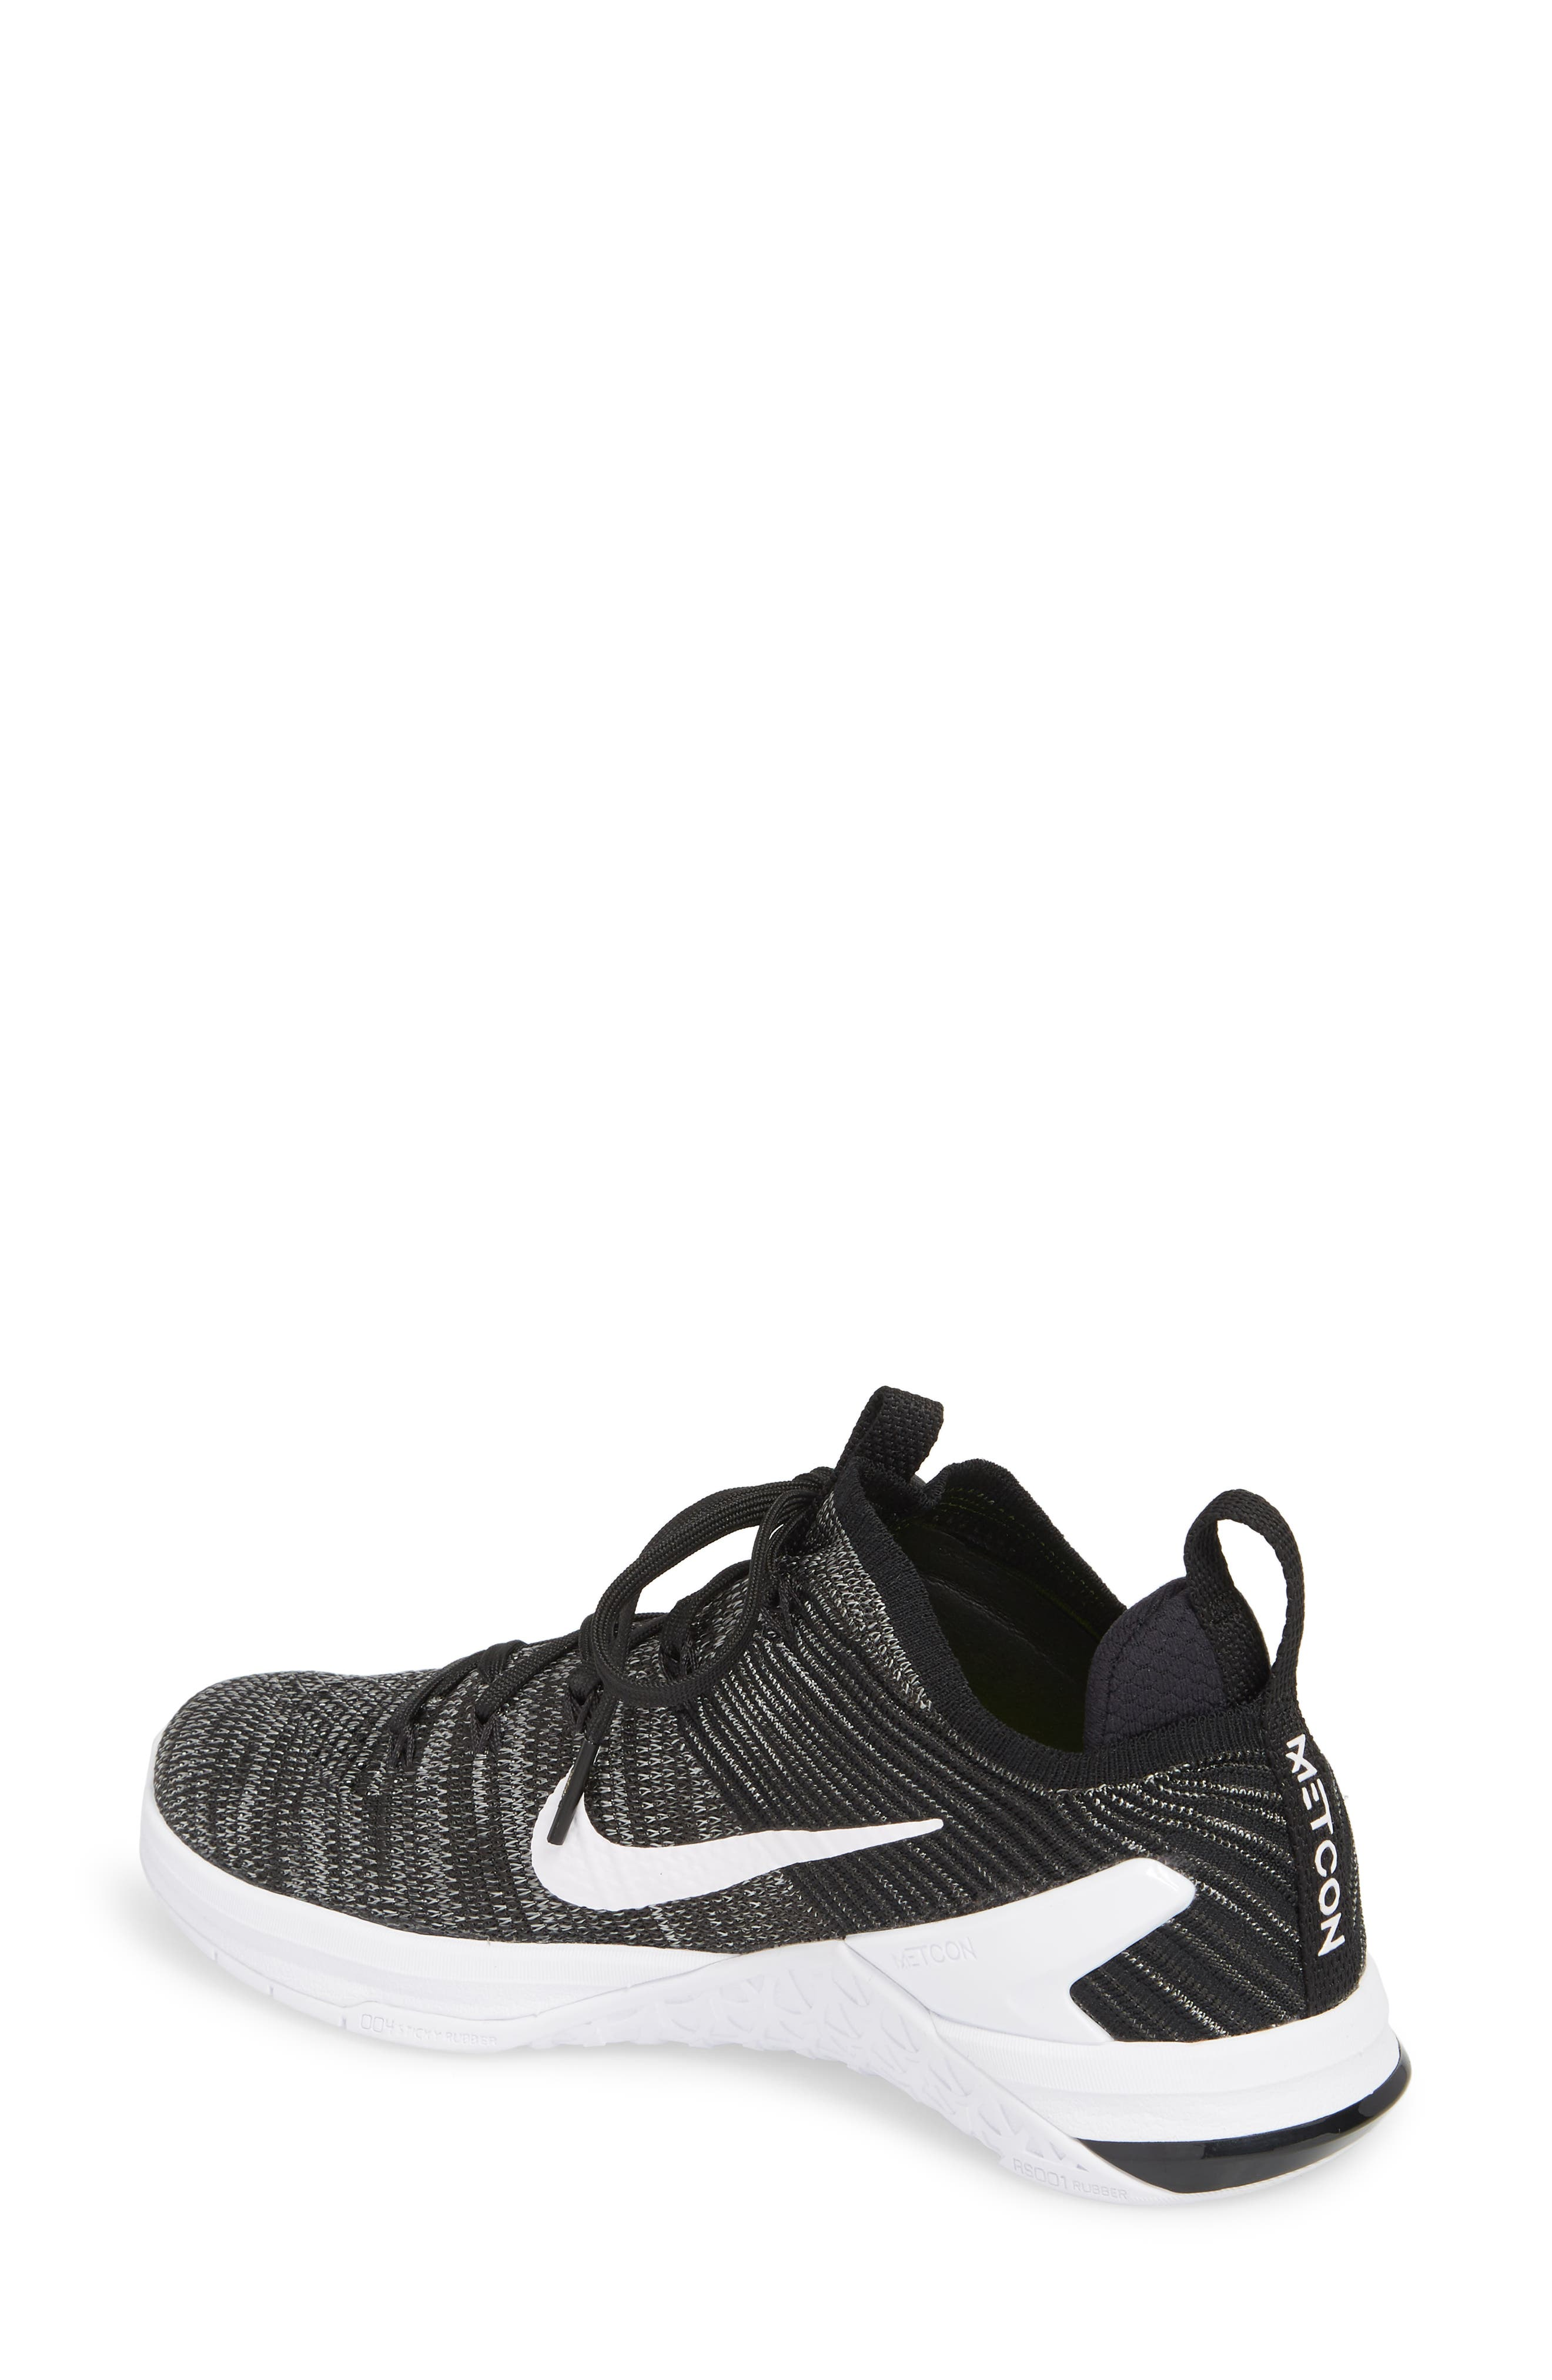 Metcon DSX Flyknit 2 Training Shoe,                             Alternate thumbnail 9, color,